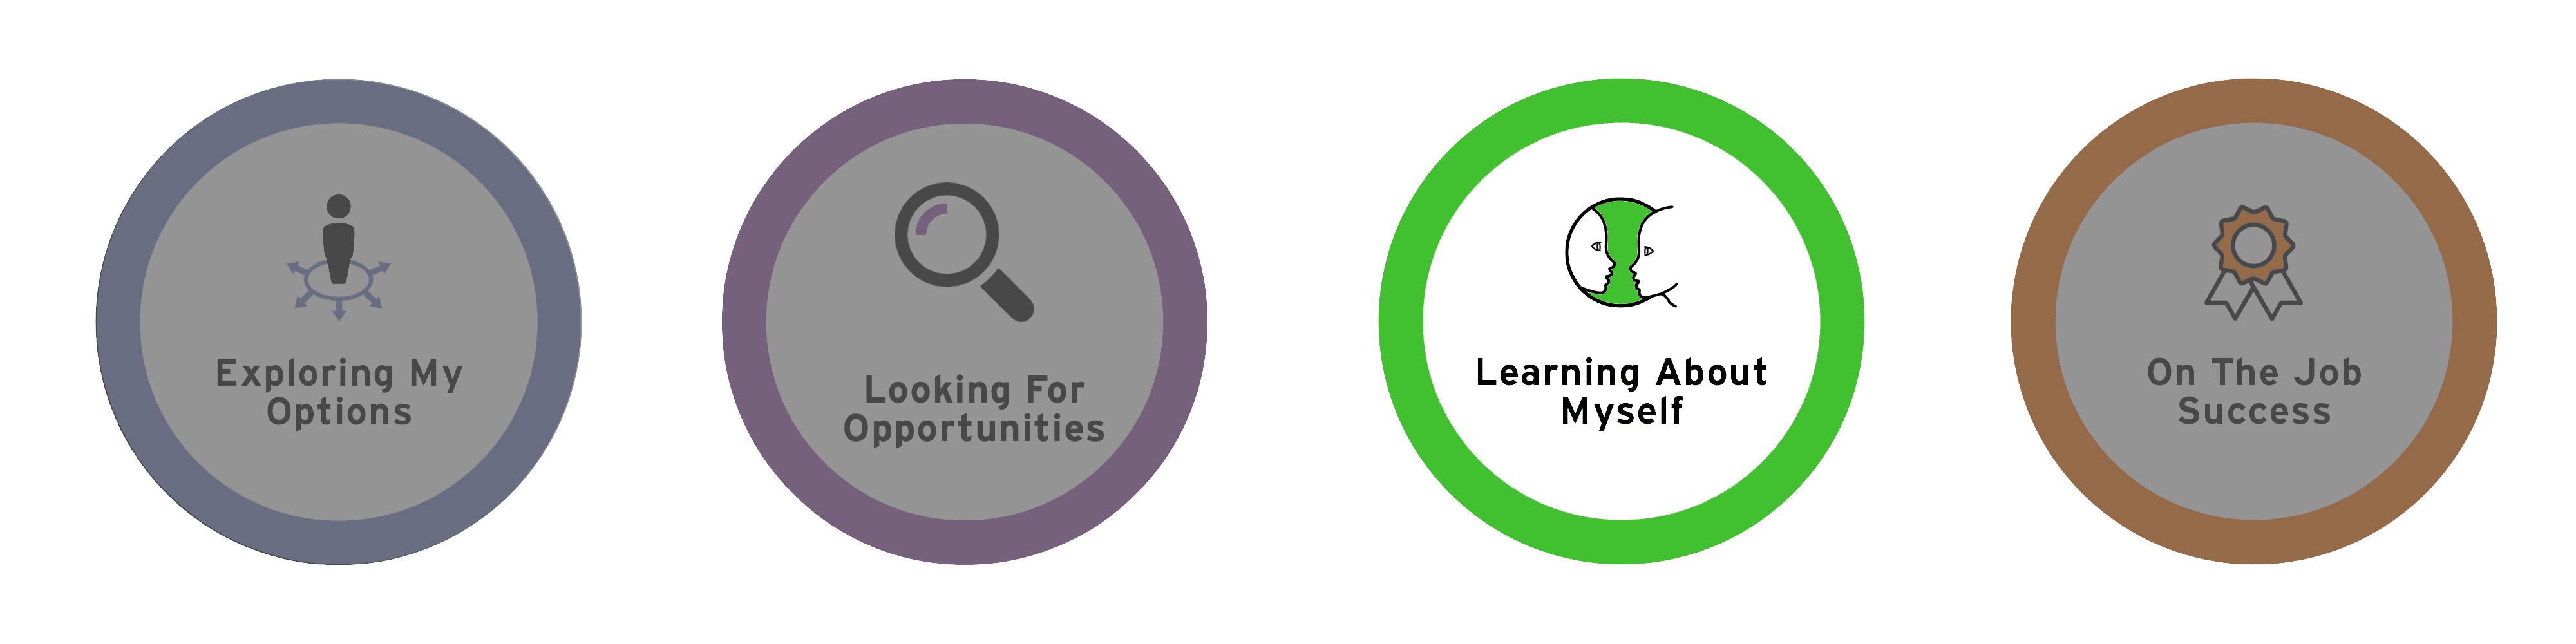 Learning about myself - My Career Plan